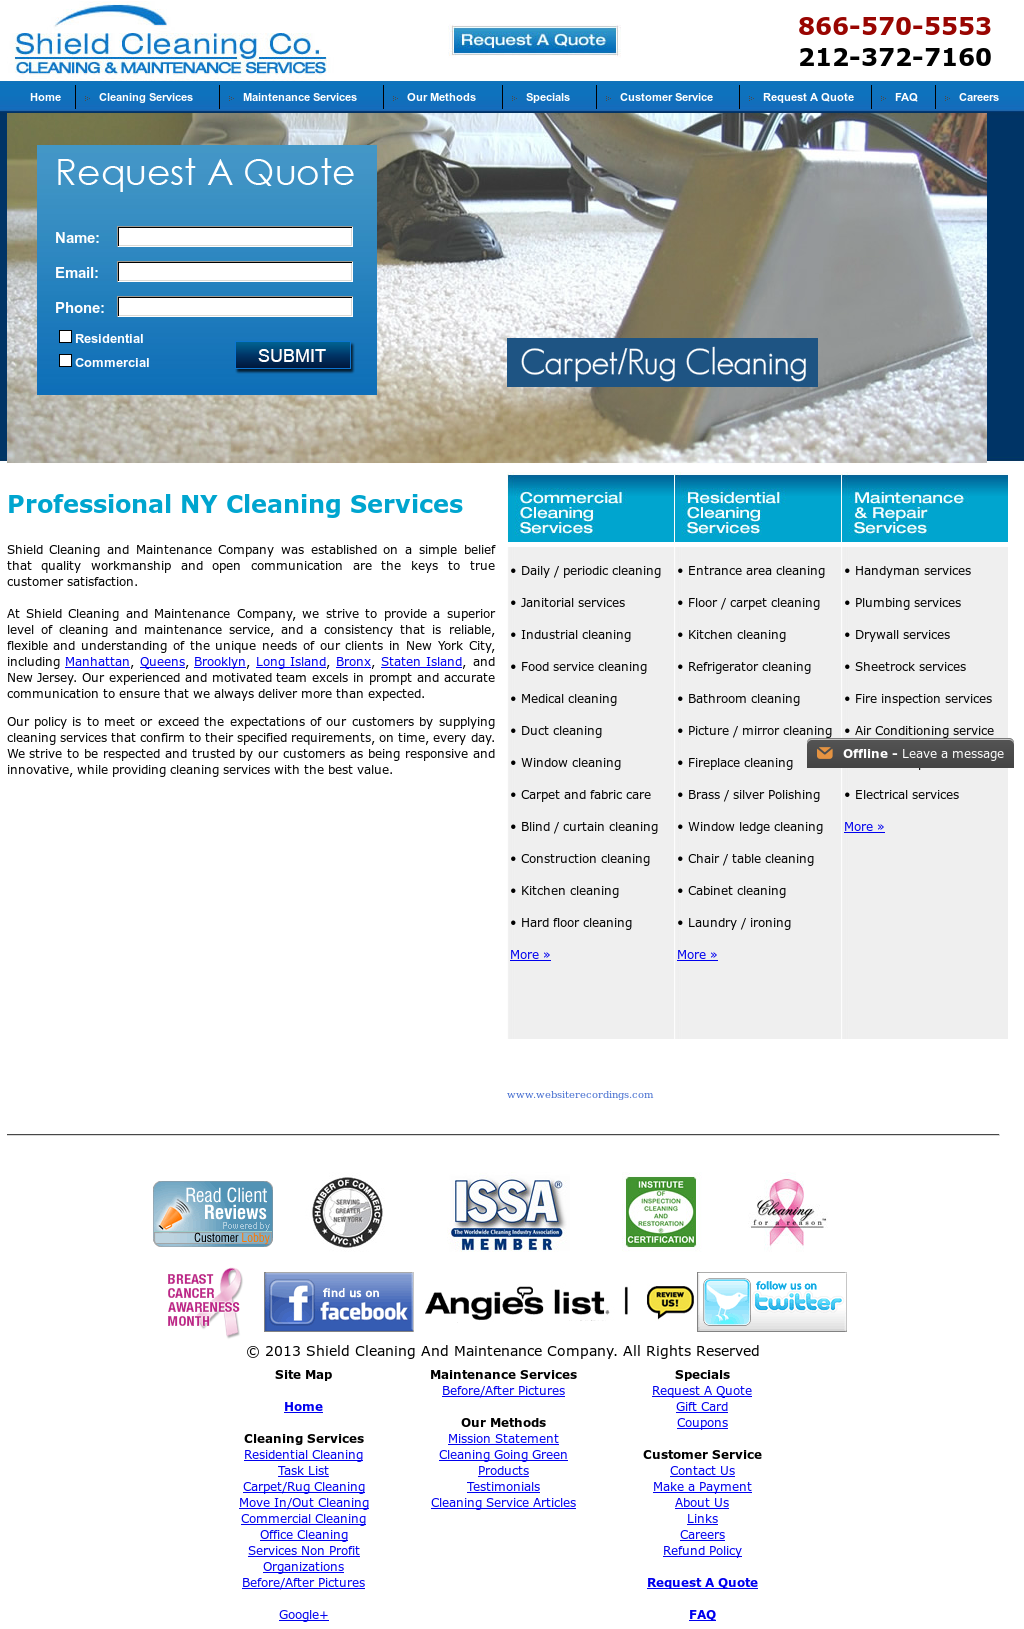 Shield Cleaning Company Competitors